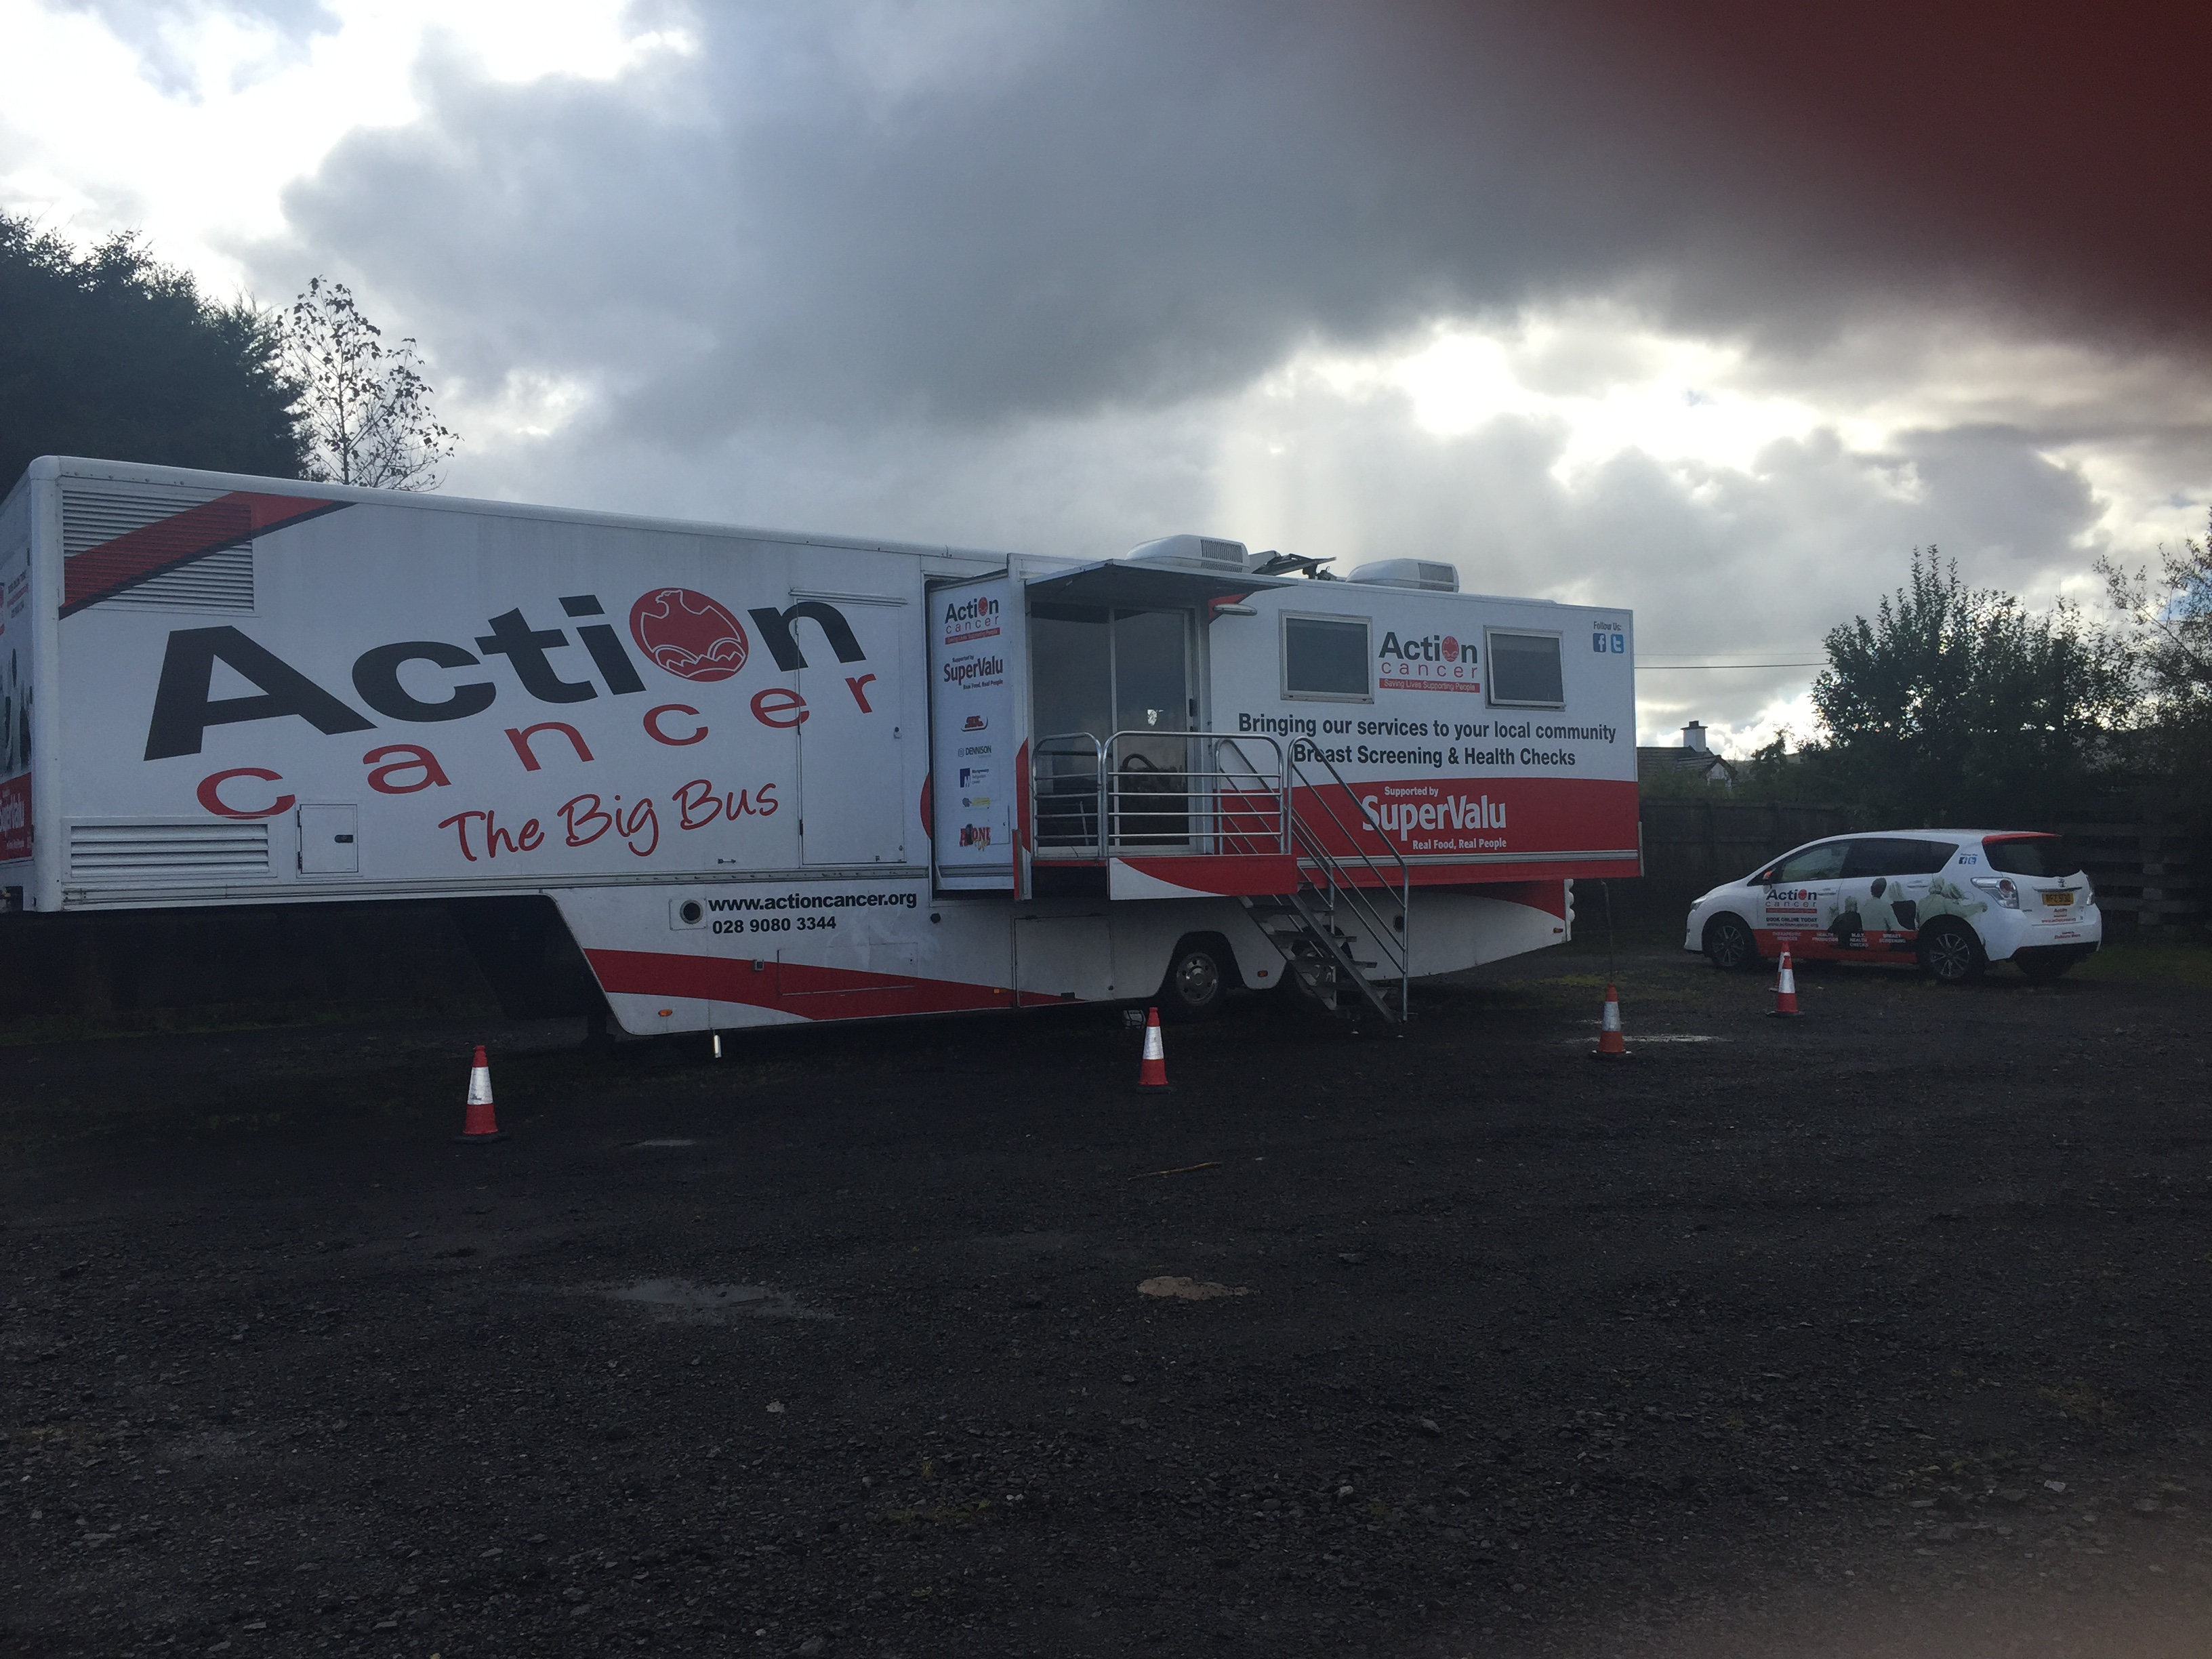 Action Cancer's Big Bus visited Derrygonnelly Harps